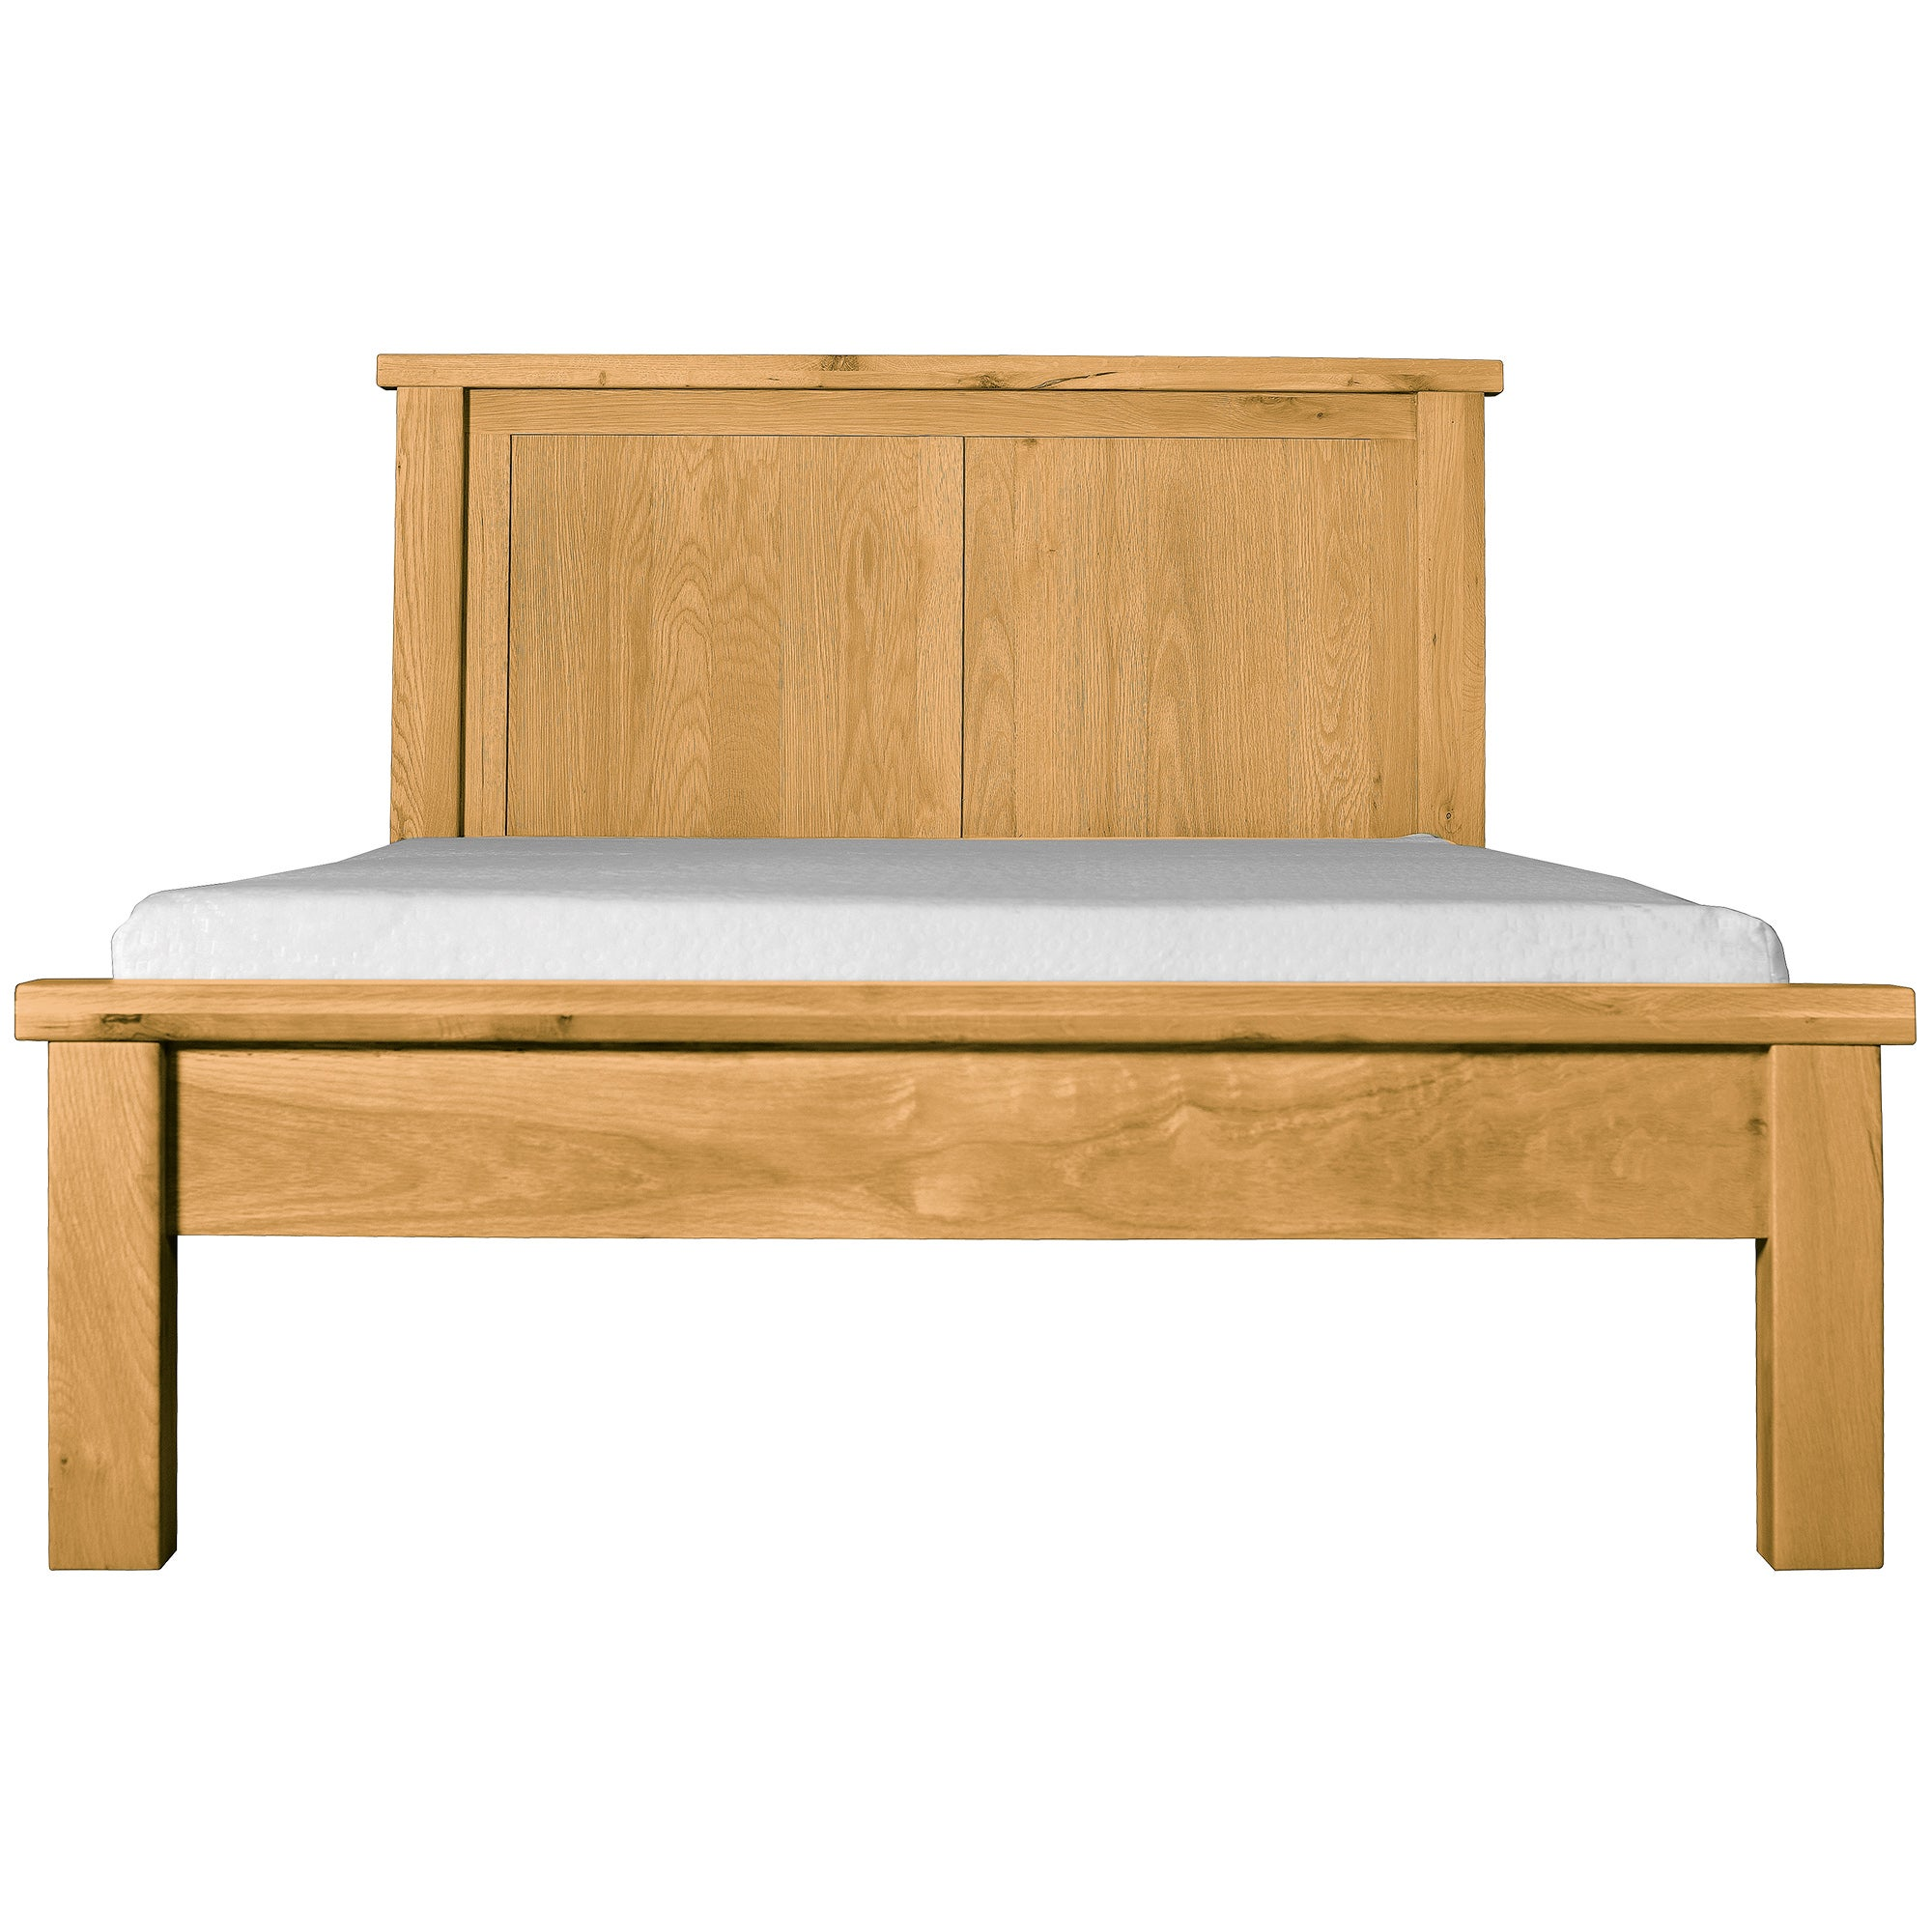 Harrogate Oak Panelled Bedstead